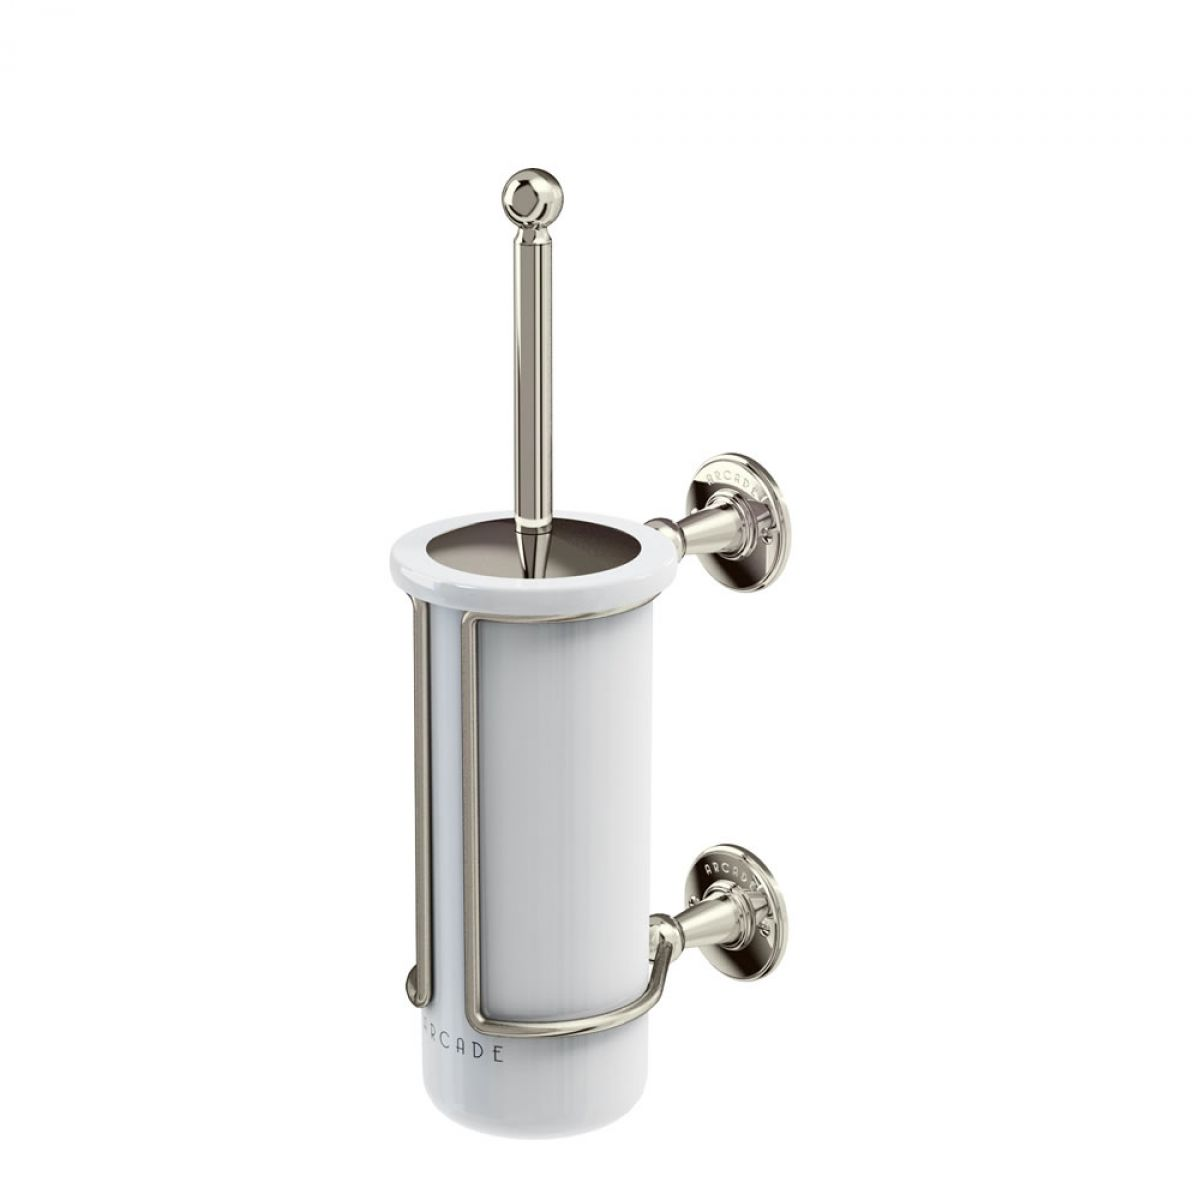 Arcade Wall Mounted Toilet Brush And Holder Uk Bathrooms